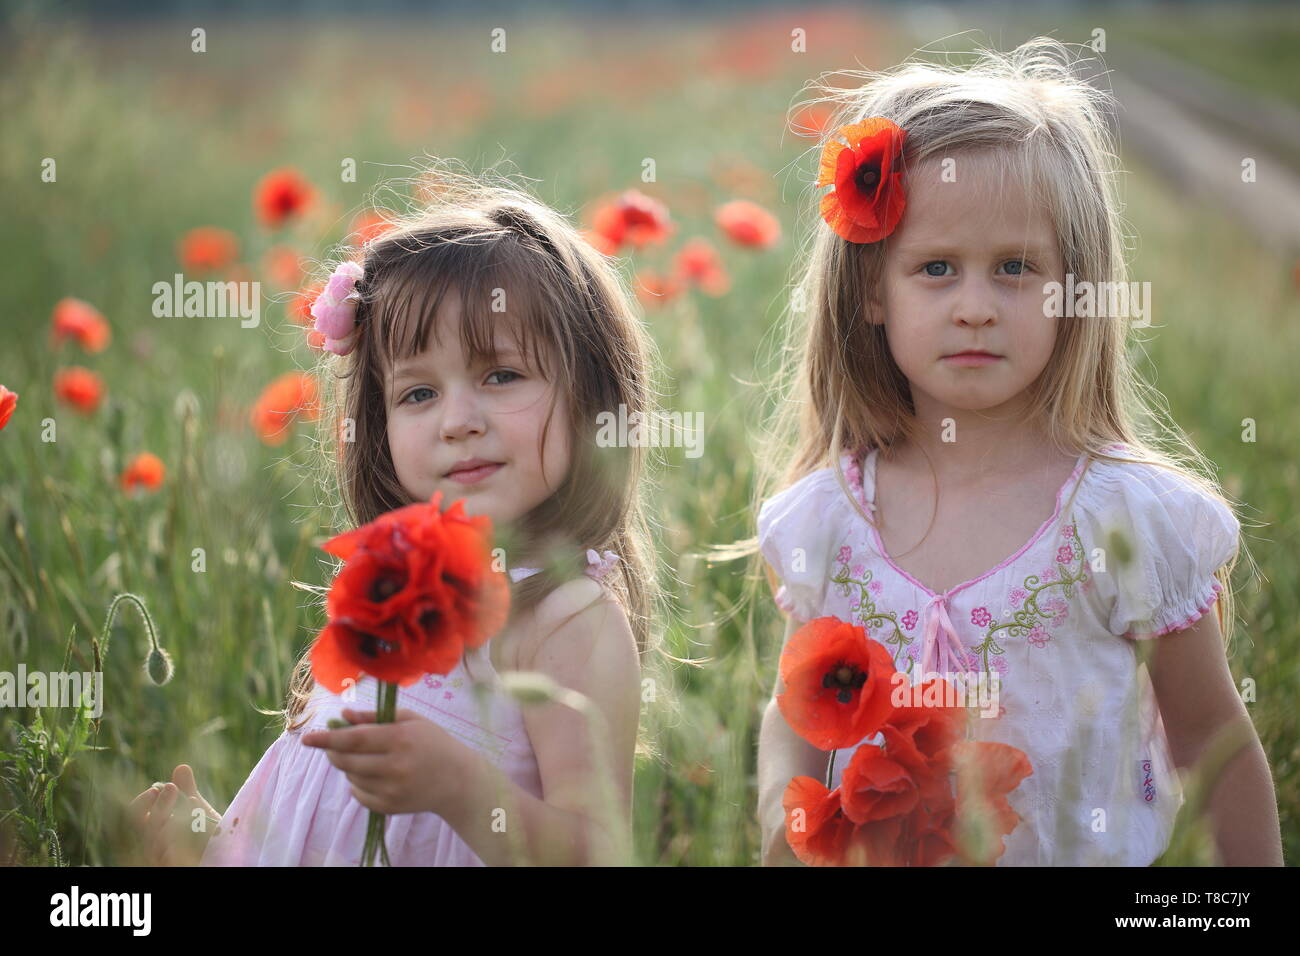 Two girls collect a bouquet of poppies - Stock Image